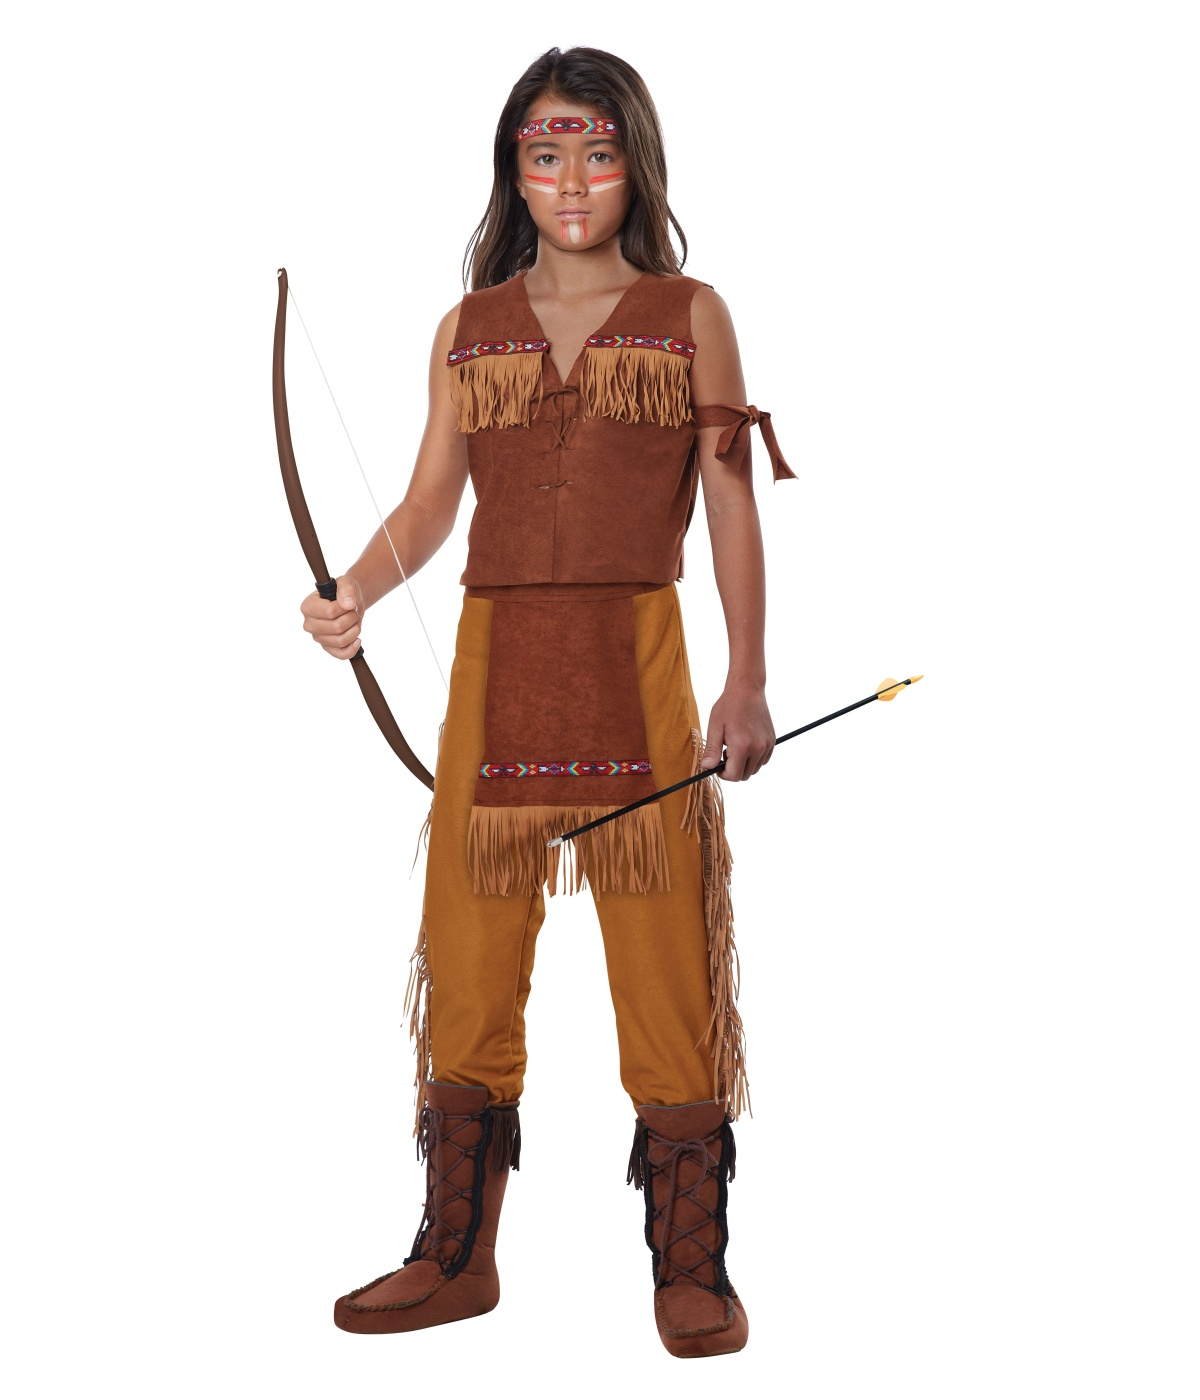 Classic Native American Indian Boys Costume Indian Costumes